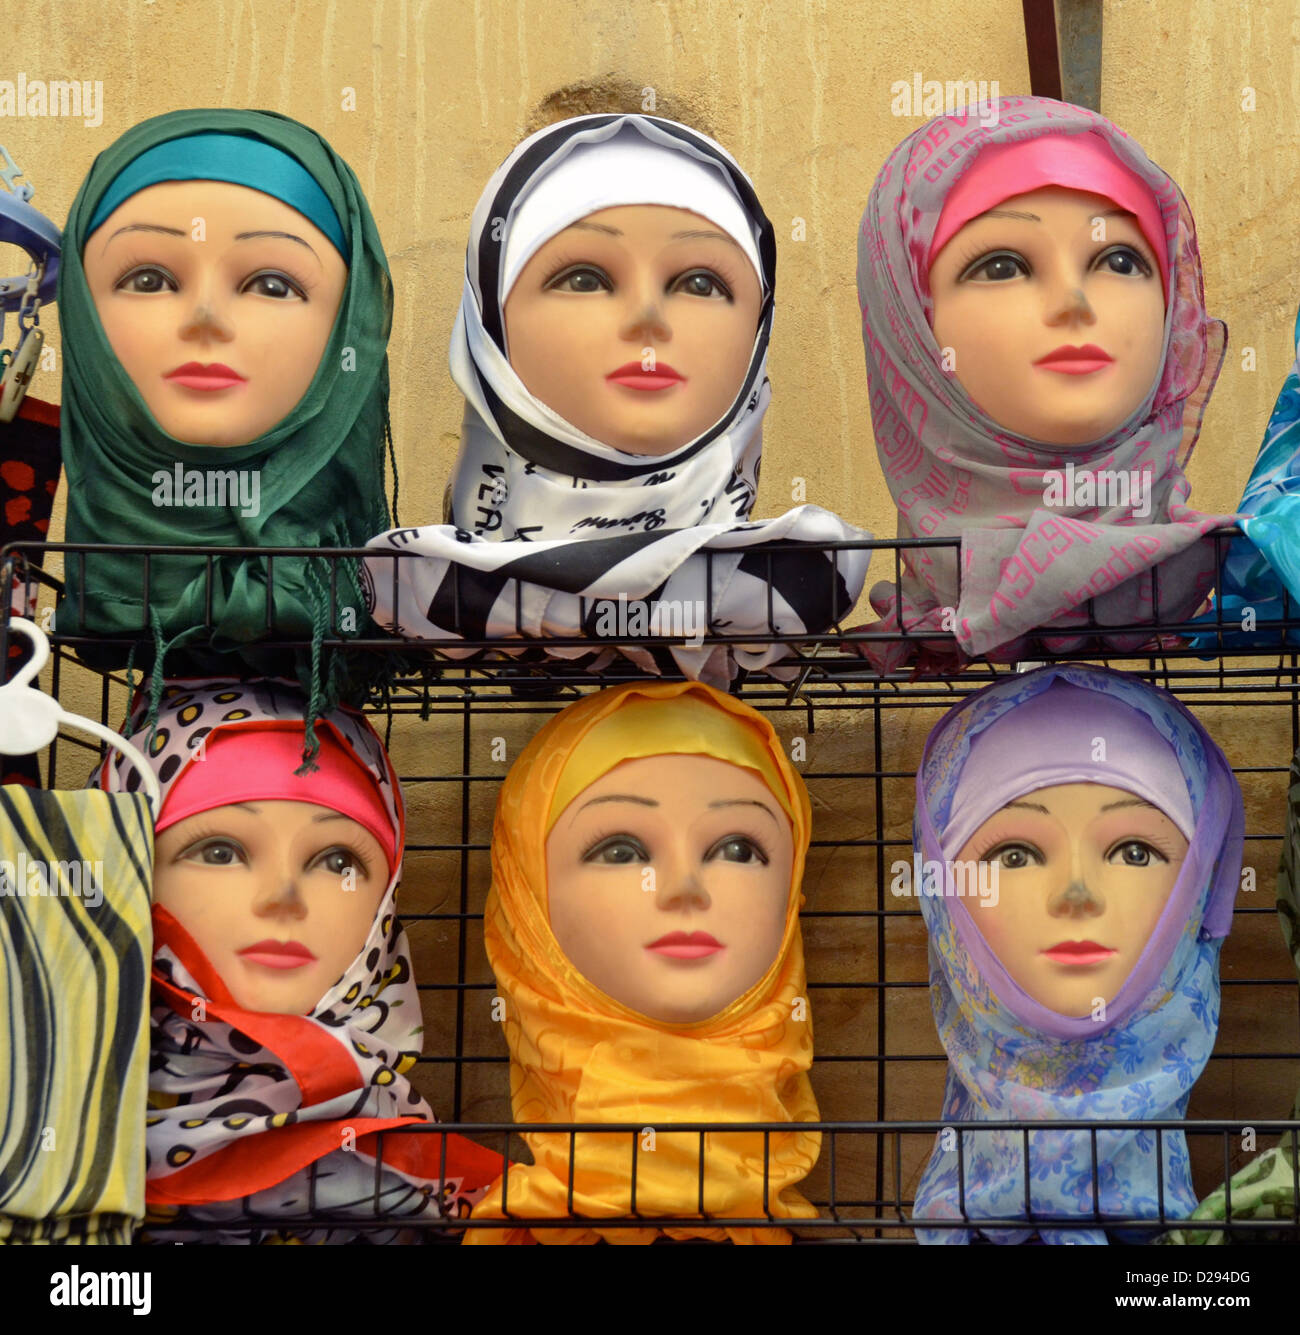 Islam hijabs for sale in Fez, Morocco - Stock Image